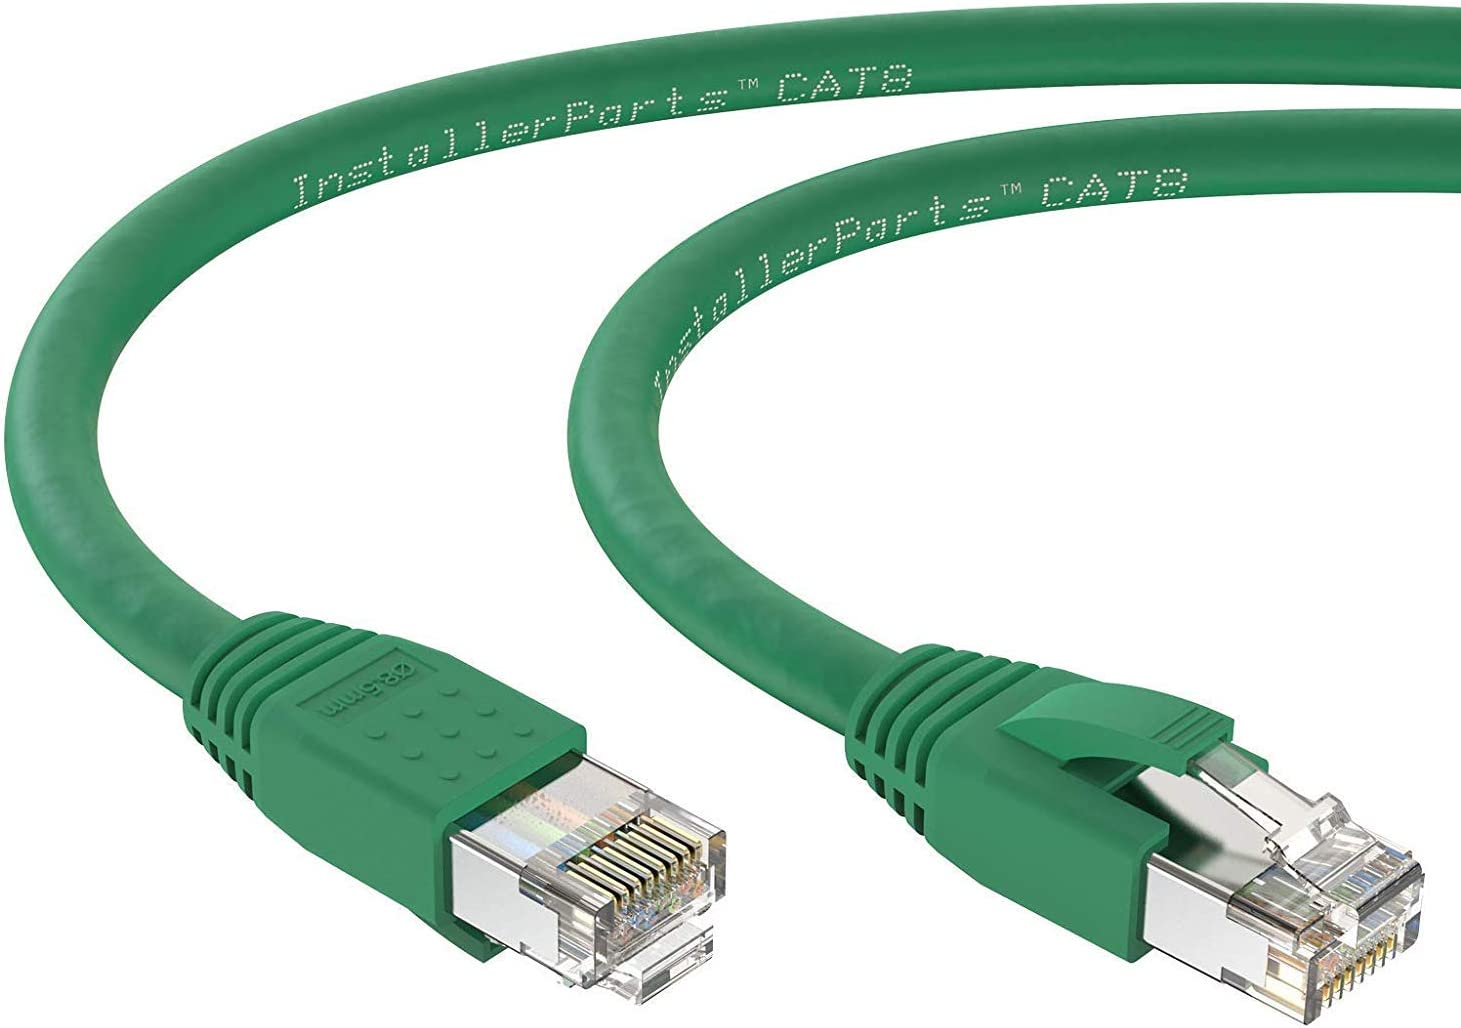 40Gigabit//Sec Network//High Speed Internet Cable for Router InstallerParts Ethernet Cable CAT8 Cable 25 FT Modem,Gaming//2000 MHZ Green Professional Series 24AWG